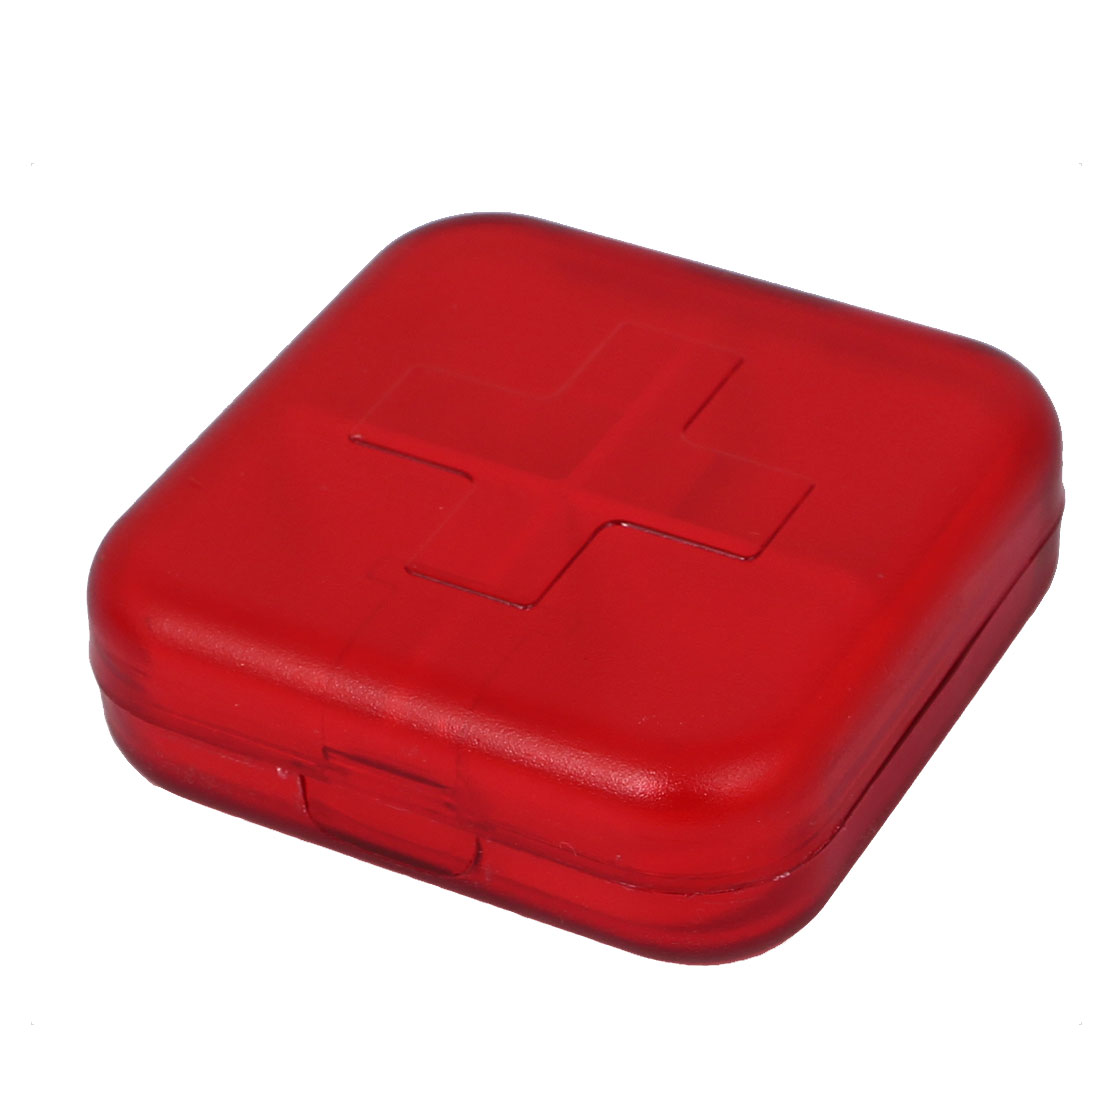 Plastic 4 Compartments Medicine Pill Box Storage Container Case Clear Red